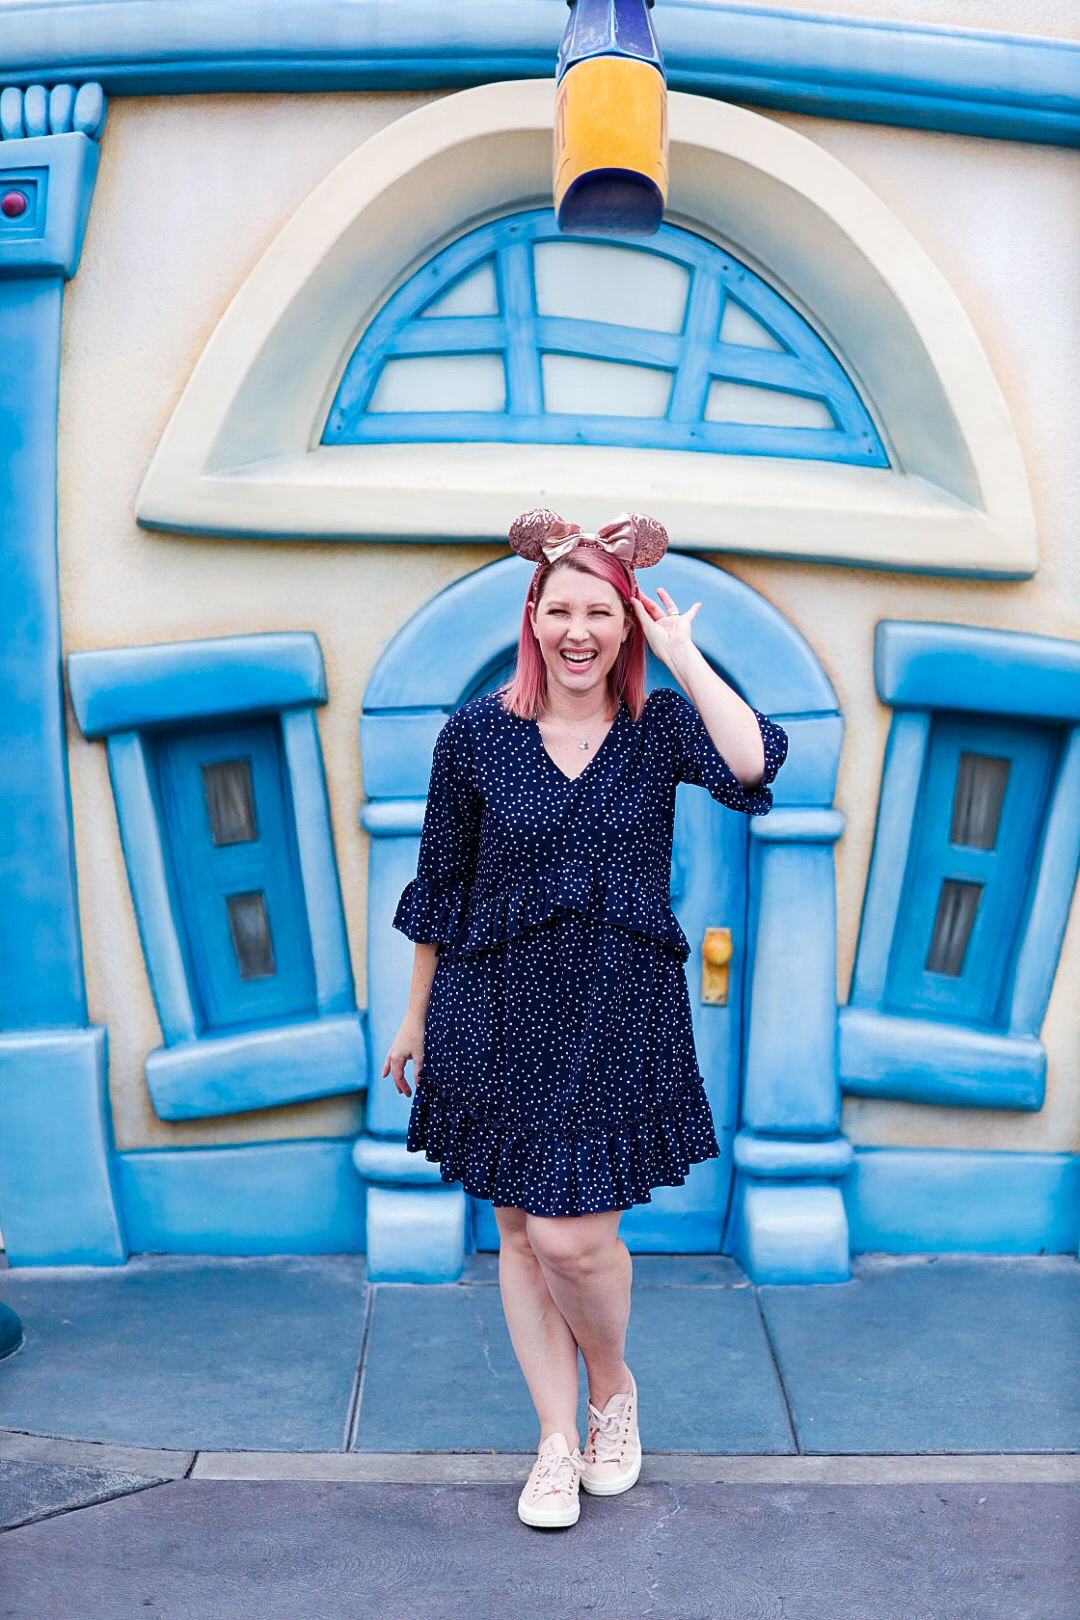 Polka Dot Outfits: this polka dot dress is the perfect Disneyland outfit!